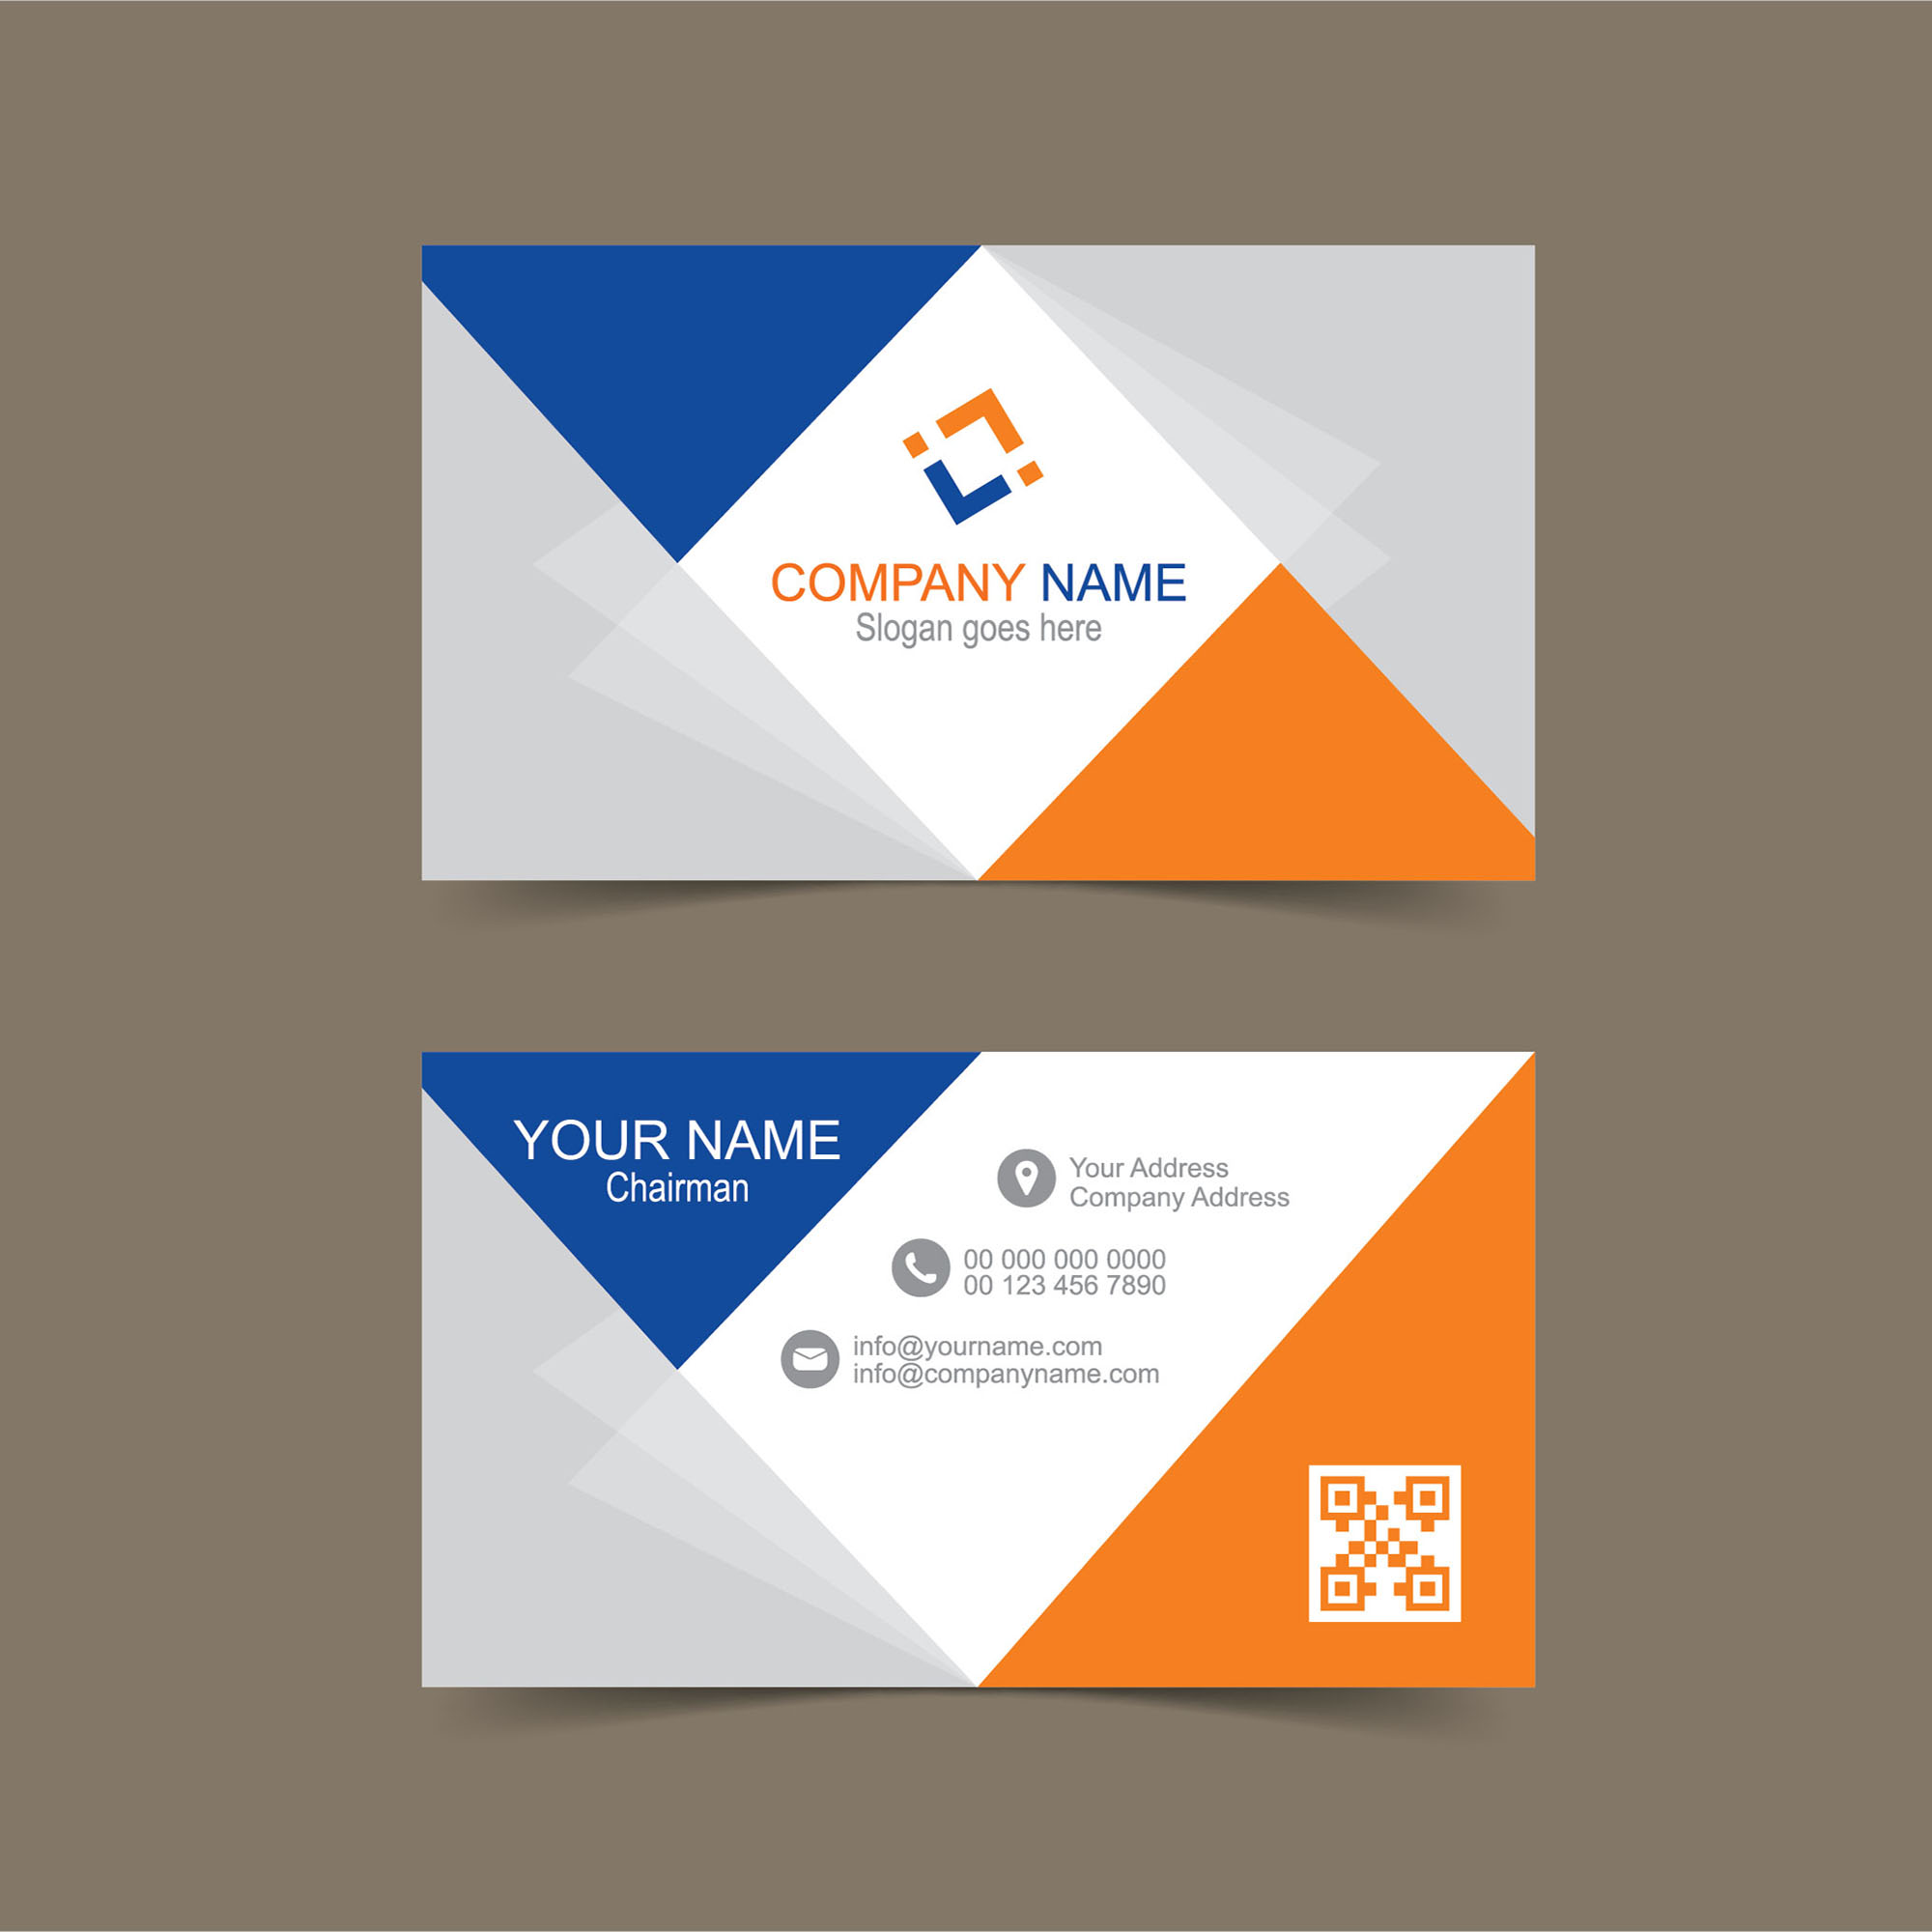 Free business card template for illustrator wisxi business card business cards business card design business card template design templates reheart Choice Image